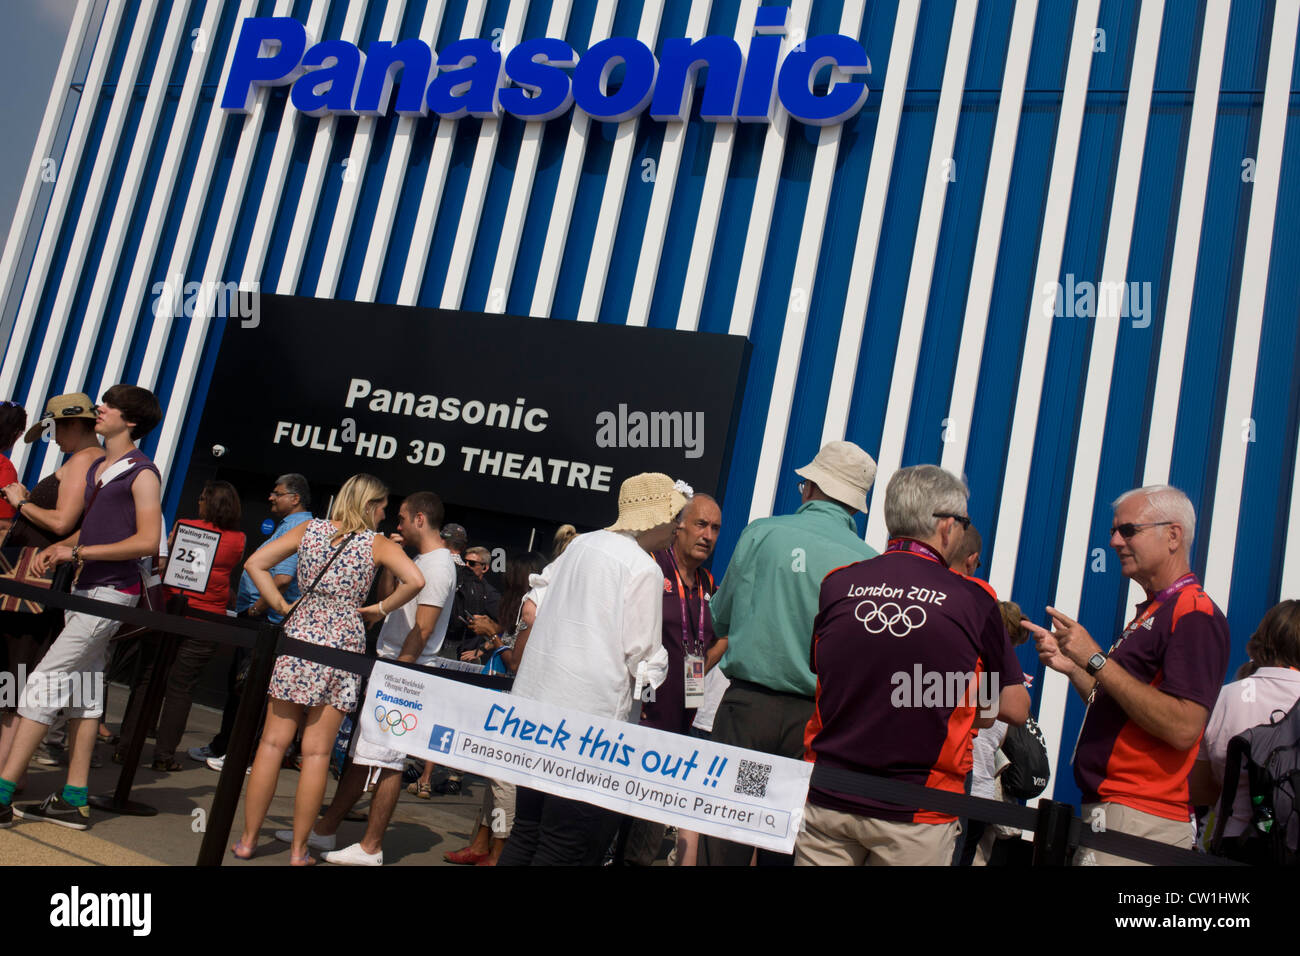 Spectators queue outside Panasonic's HD 3D theatre in the Olympic Park during the London 2012 Olympics. Panasonic - Stock Image